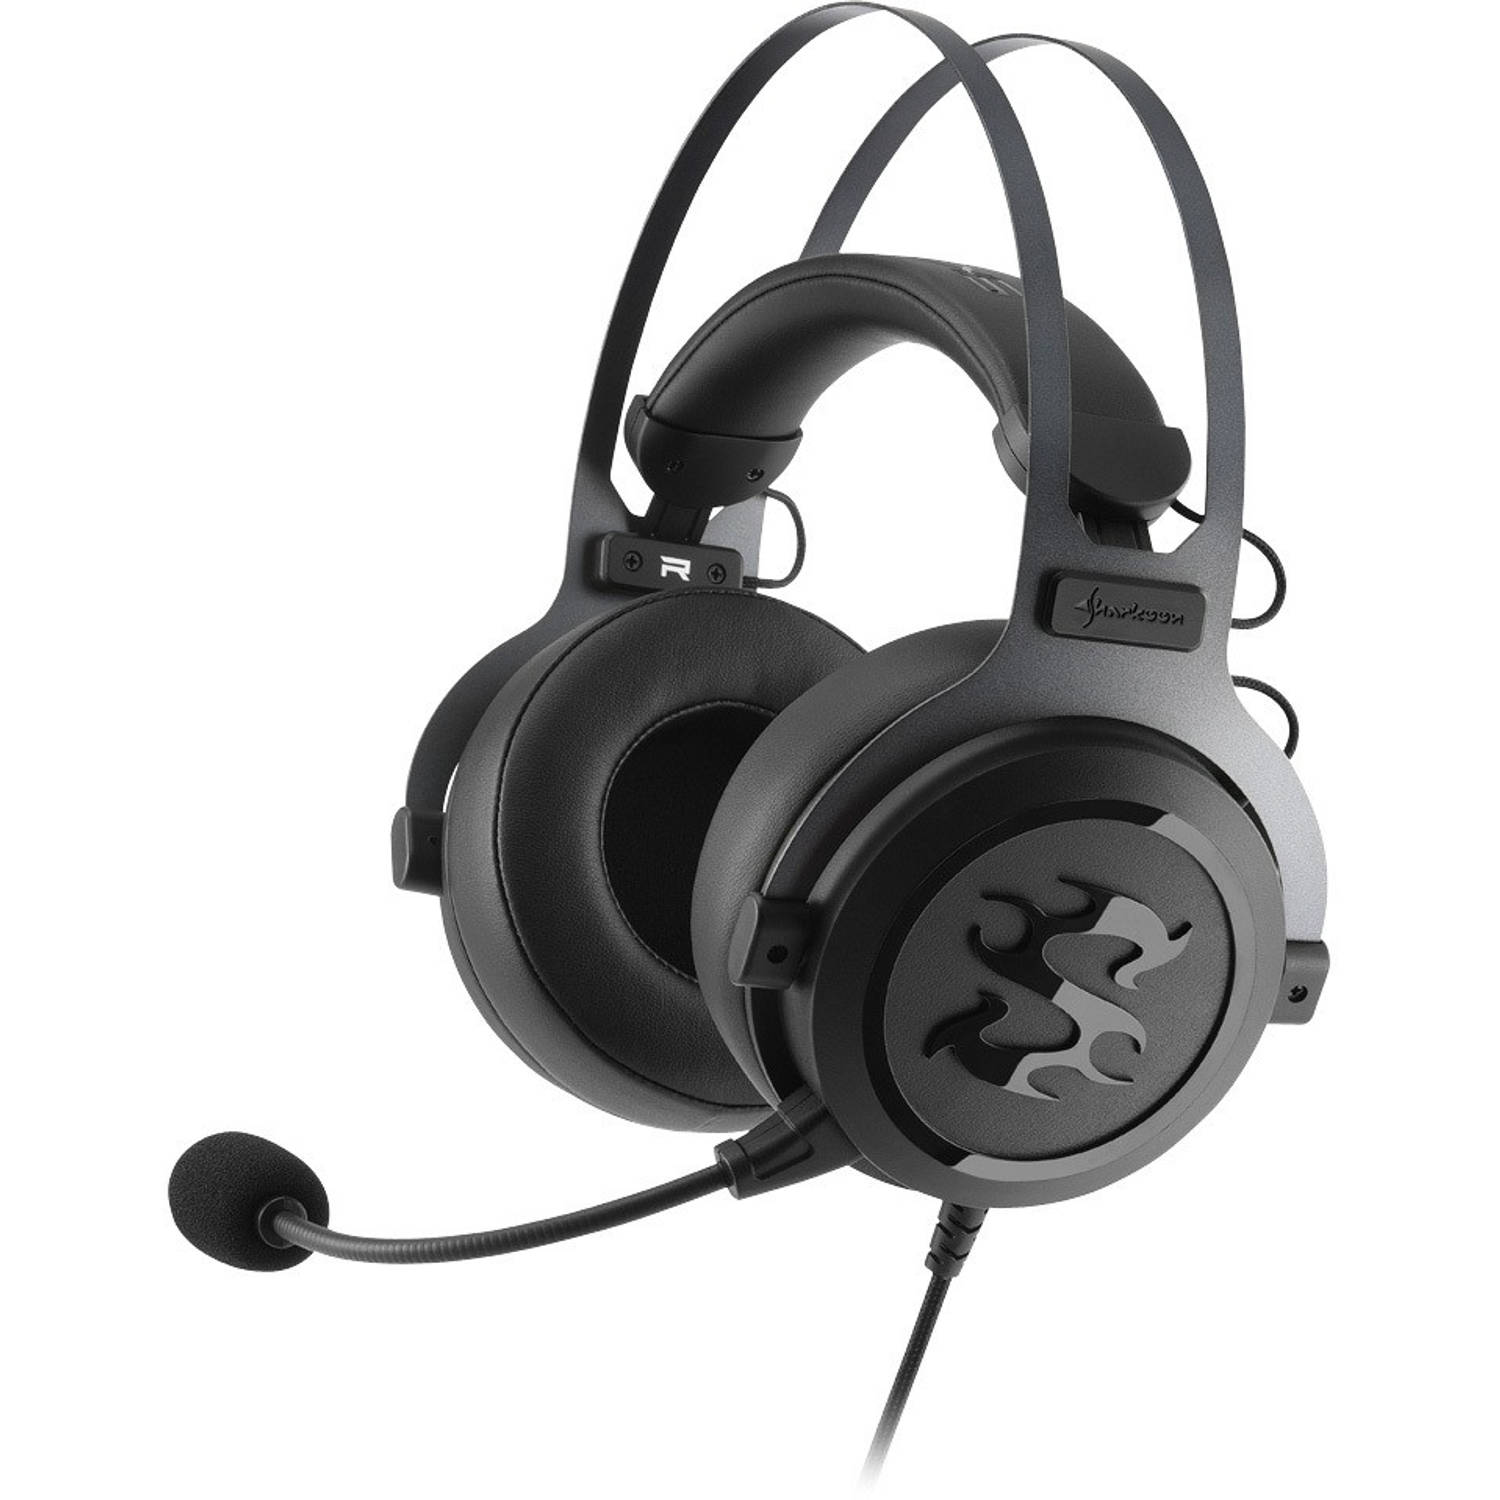 Skiller SGH3 Stereo Gaming Headset